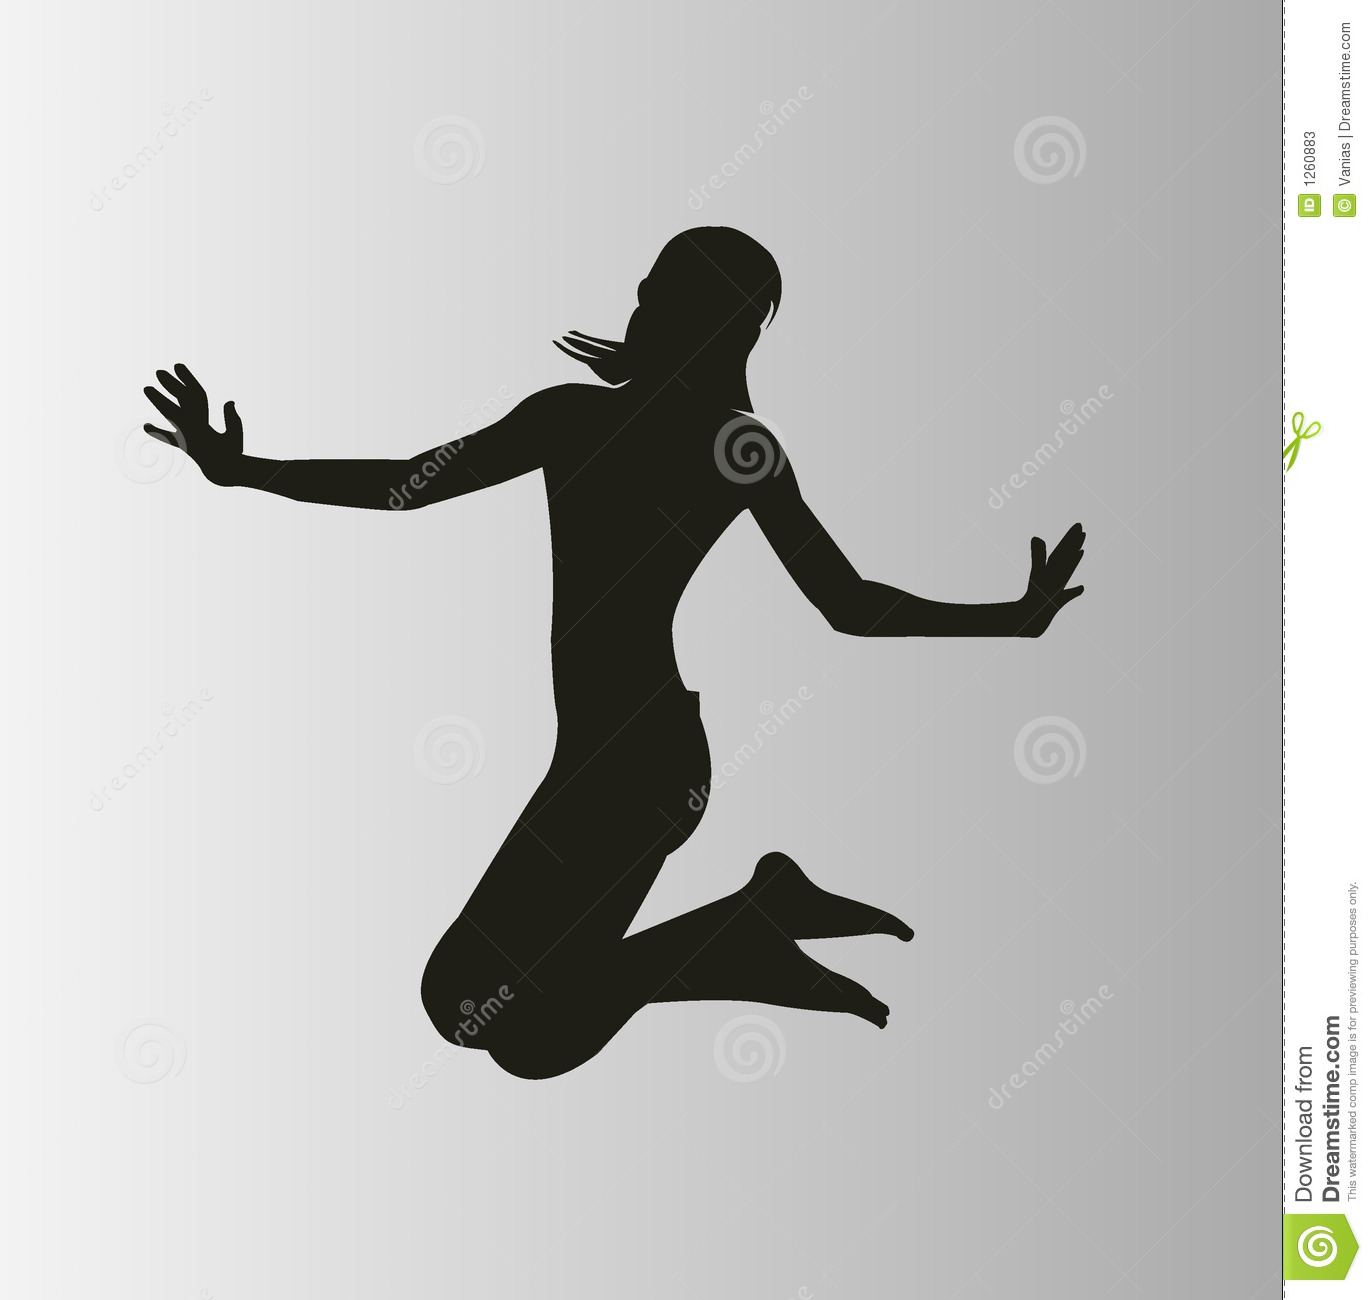 Happy woman jumping stock vector. Image of clouds, blue ...